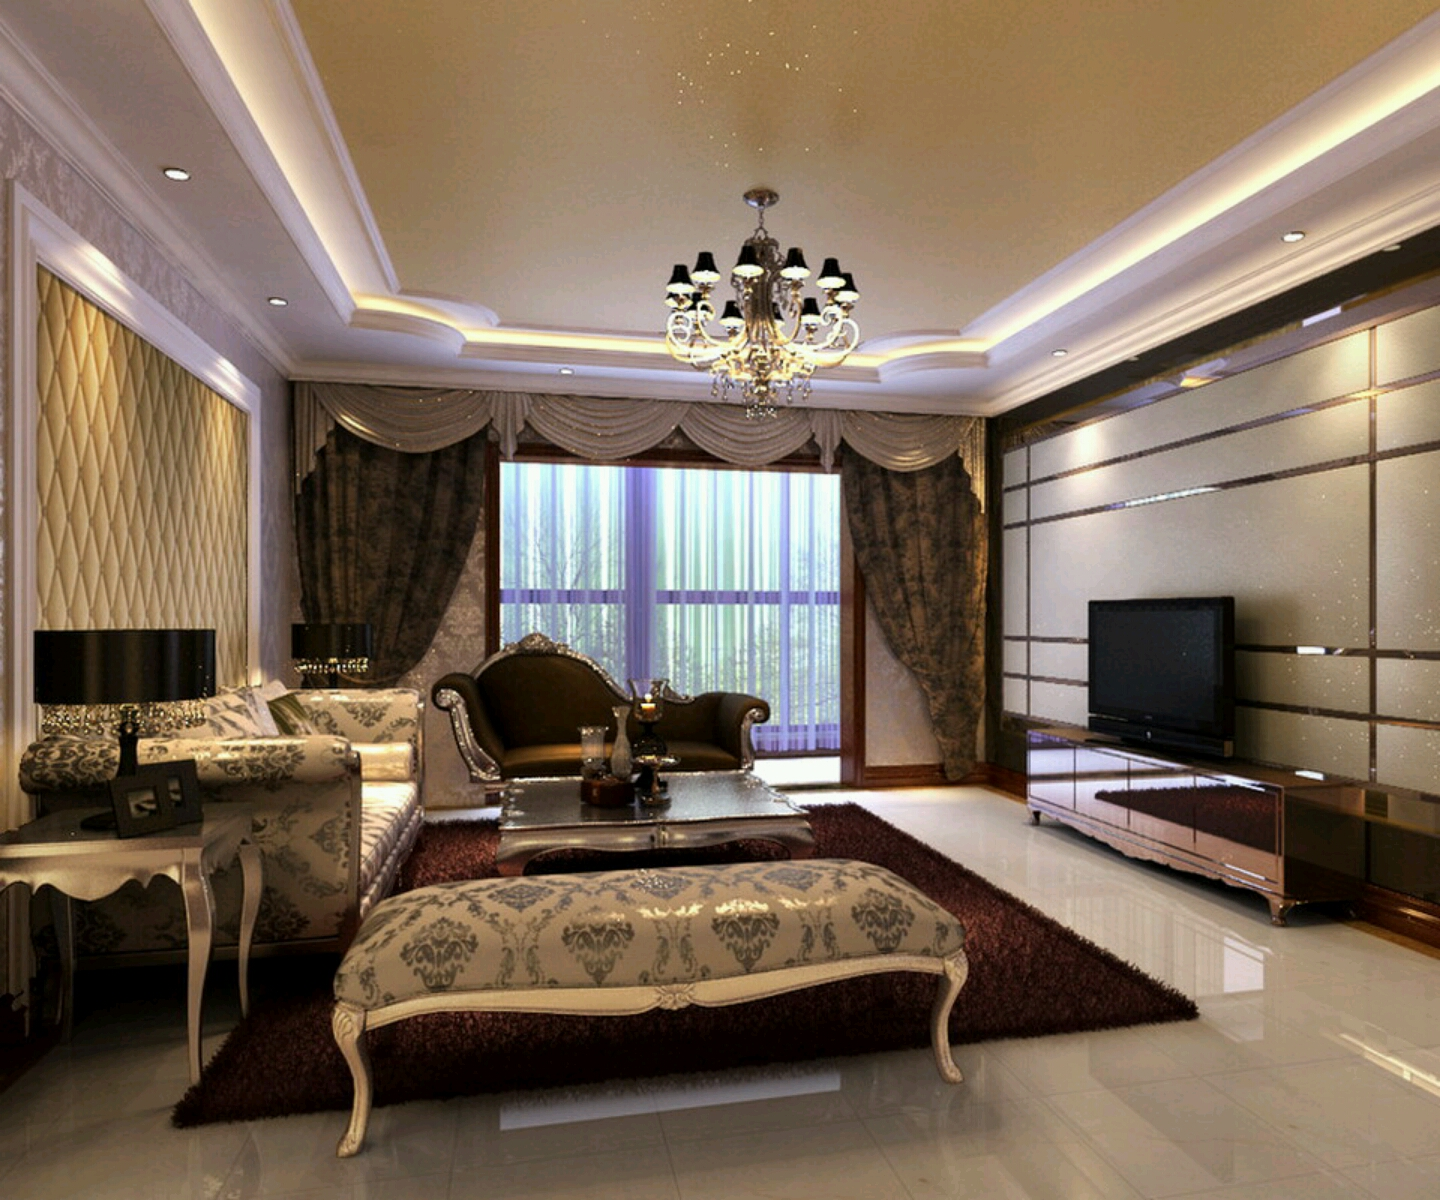 Interior decorating ideas living rooms dream house for Interior designs for lounge